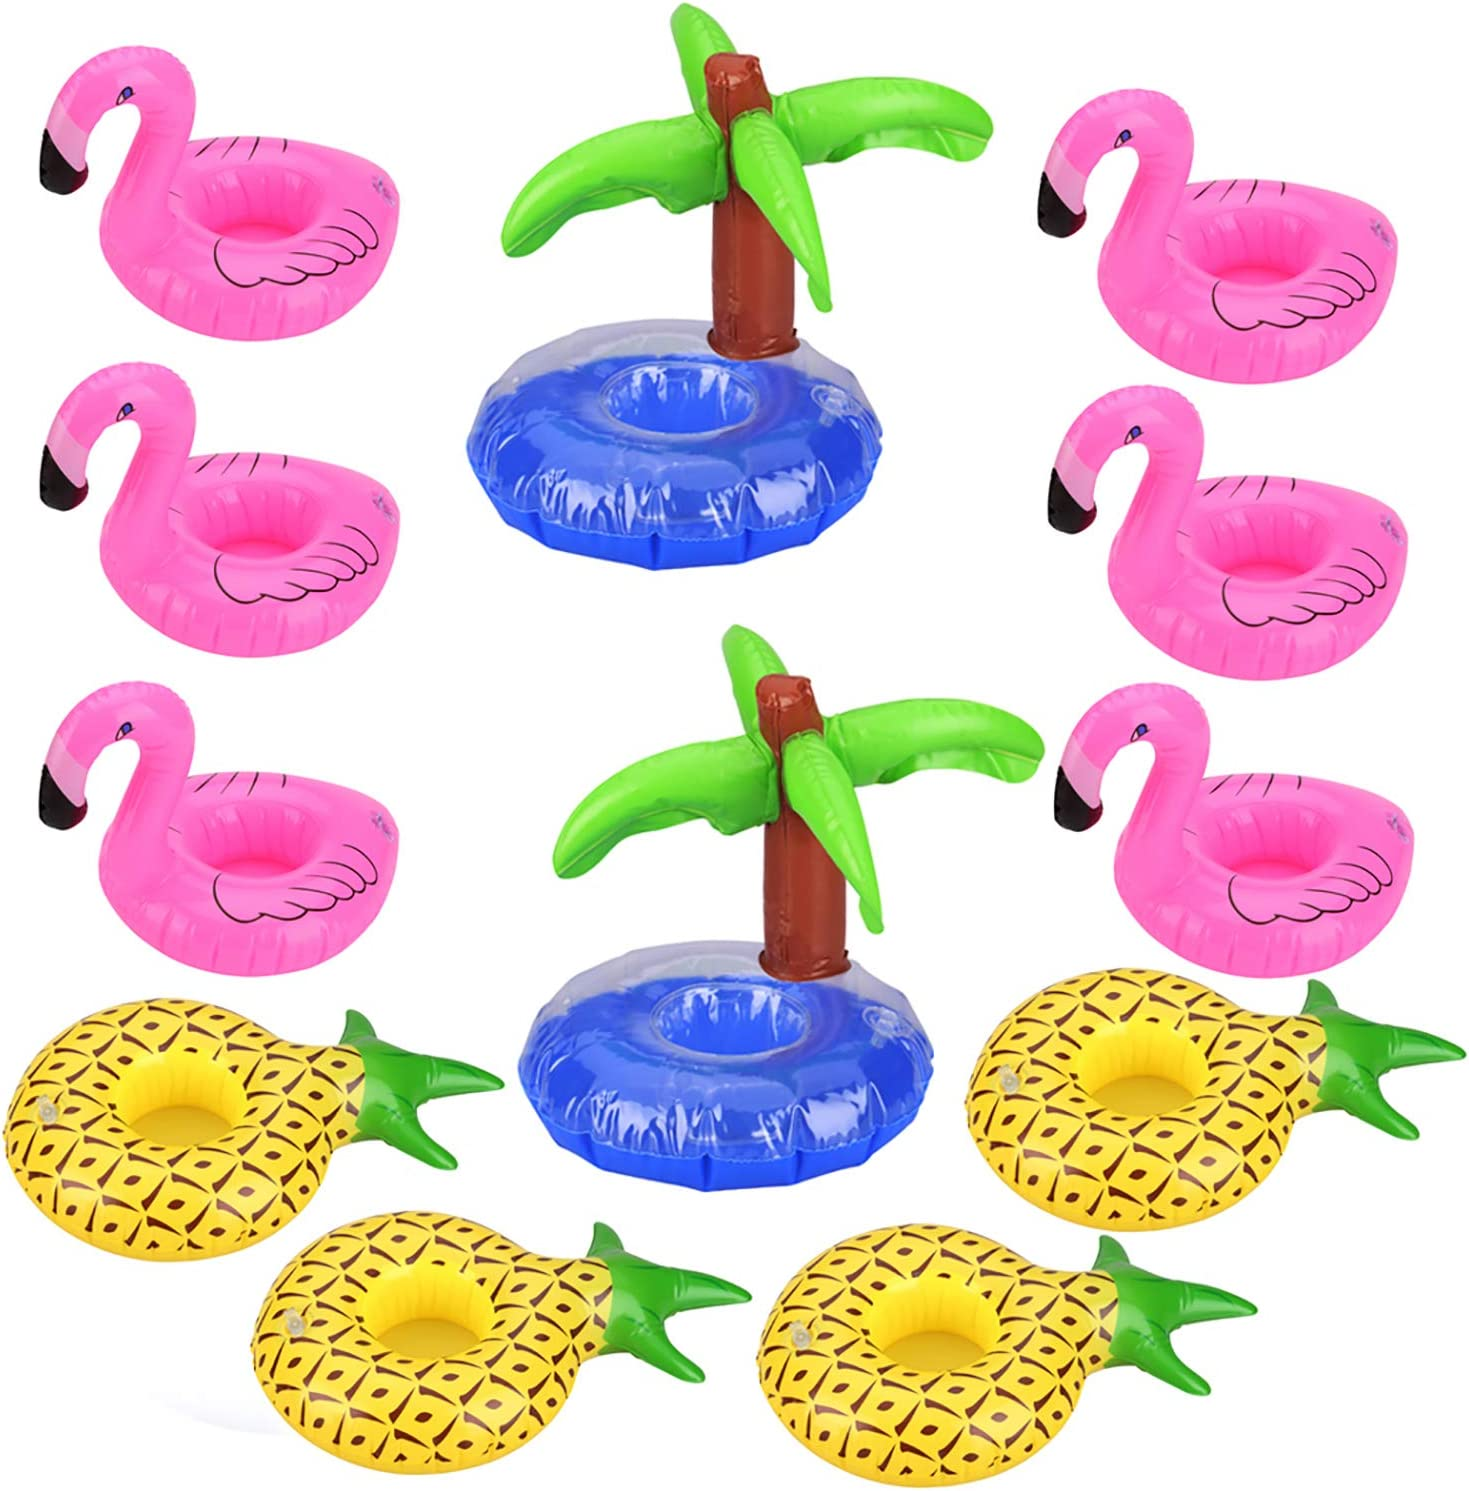 Uniqhia 12 Pack Inflatable Drink Holders - 6 PCS Pink Flamingo 4 PCS Pineapple and 2 PCS Palm Trees Drink Float - Float Your Drinks in Style